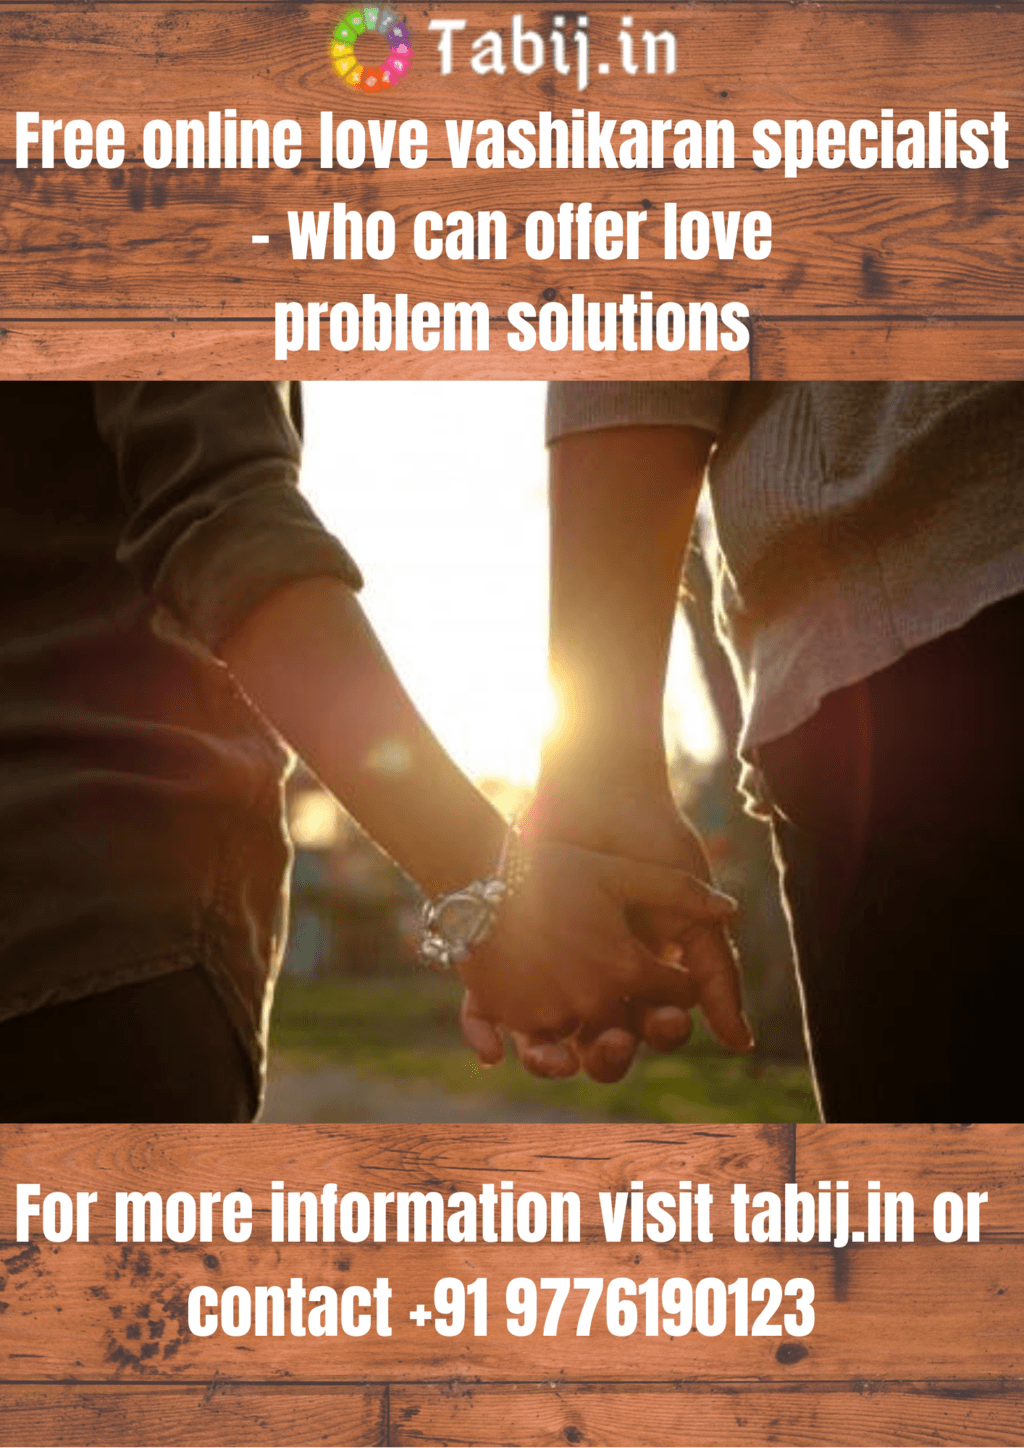 Free online love vashikaran specialist - who can offer love ... via Tabijvashikaran